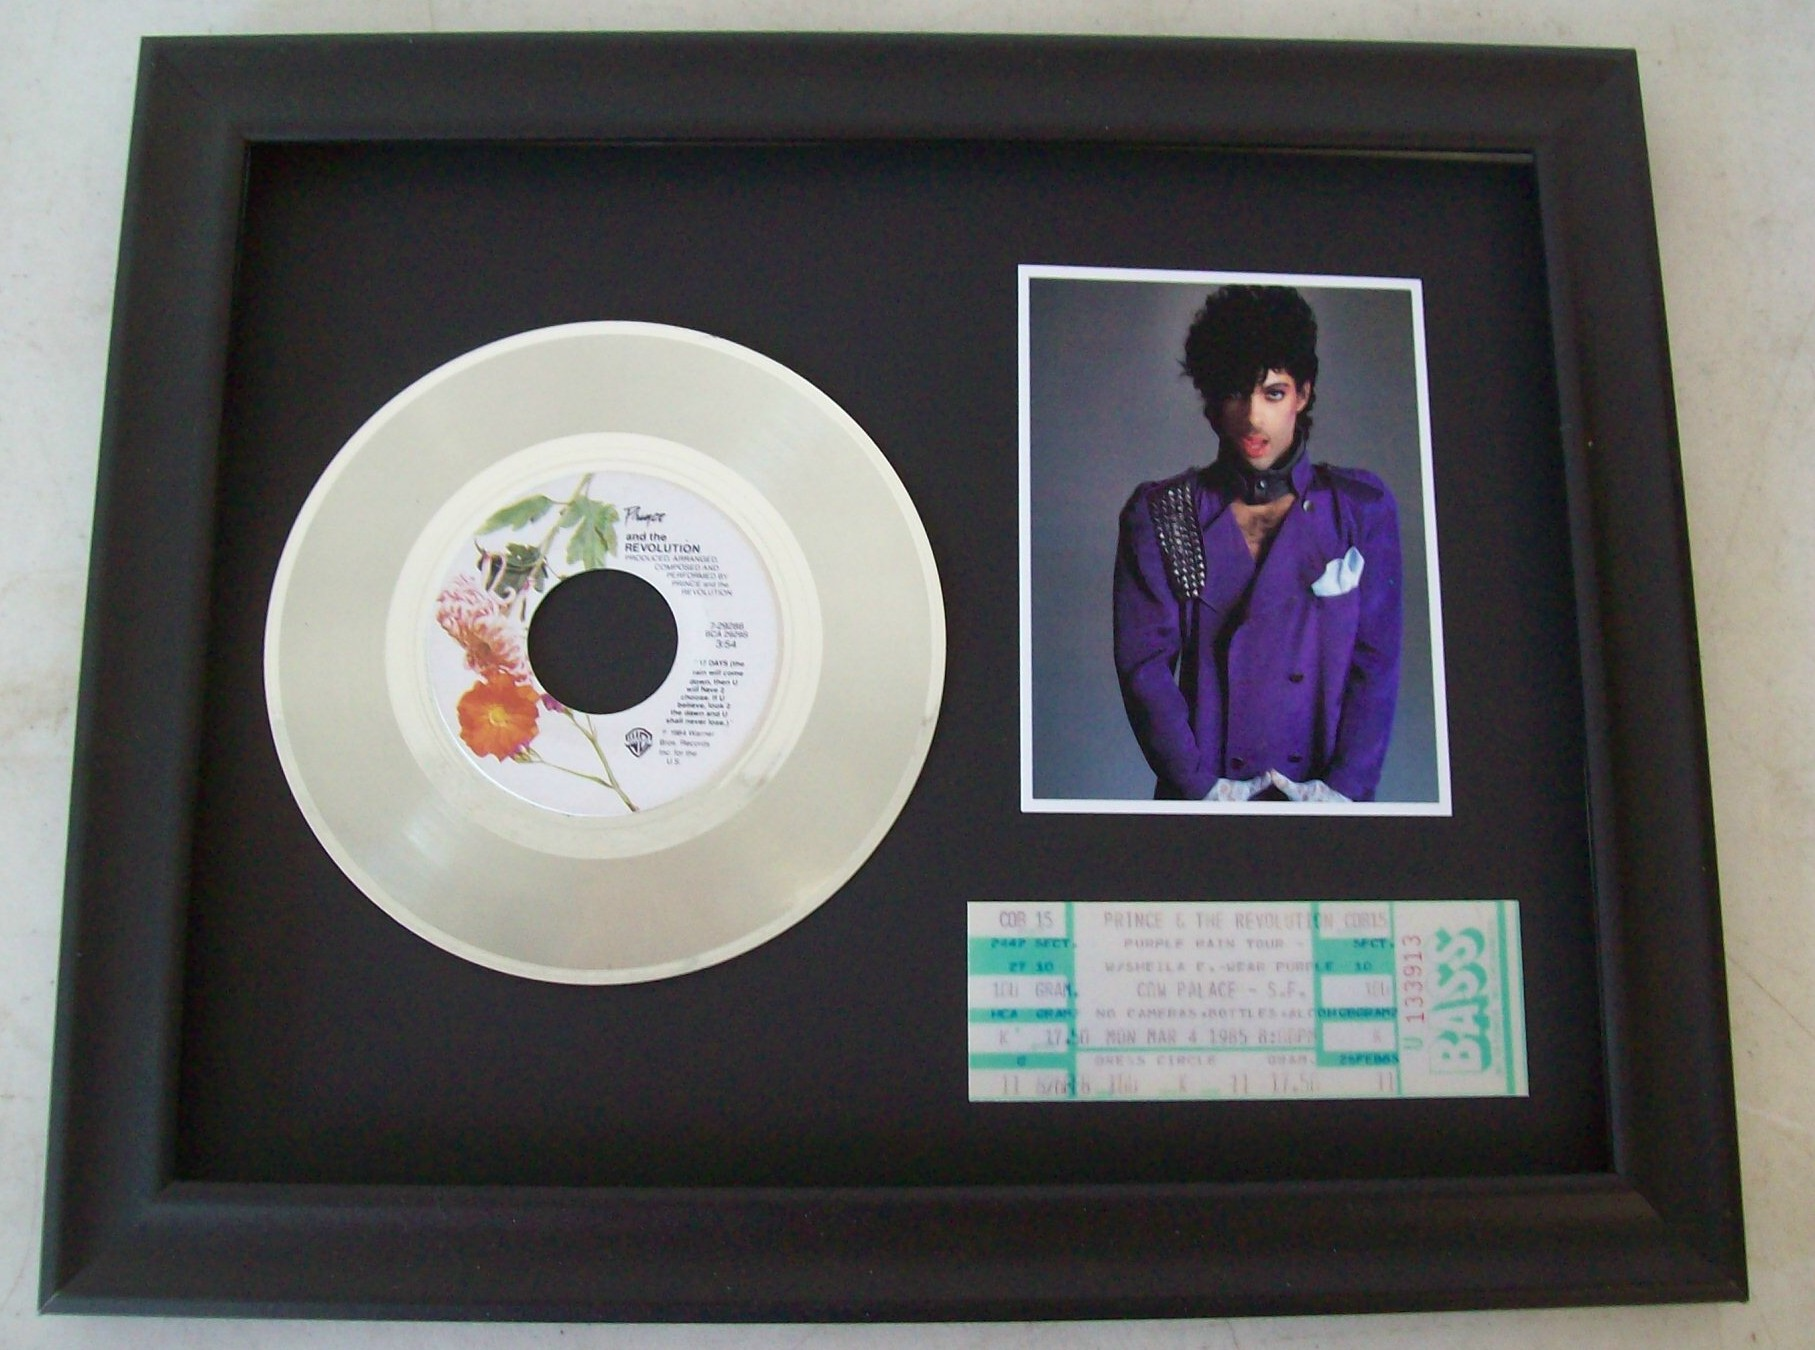 Image for Prince & the Revolution - Platinum